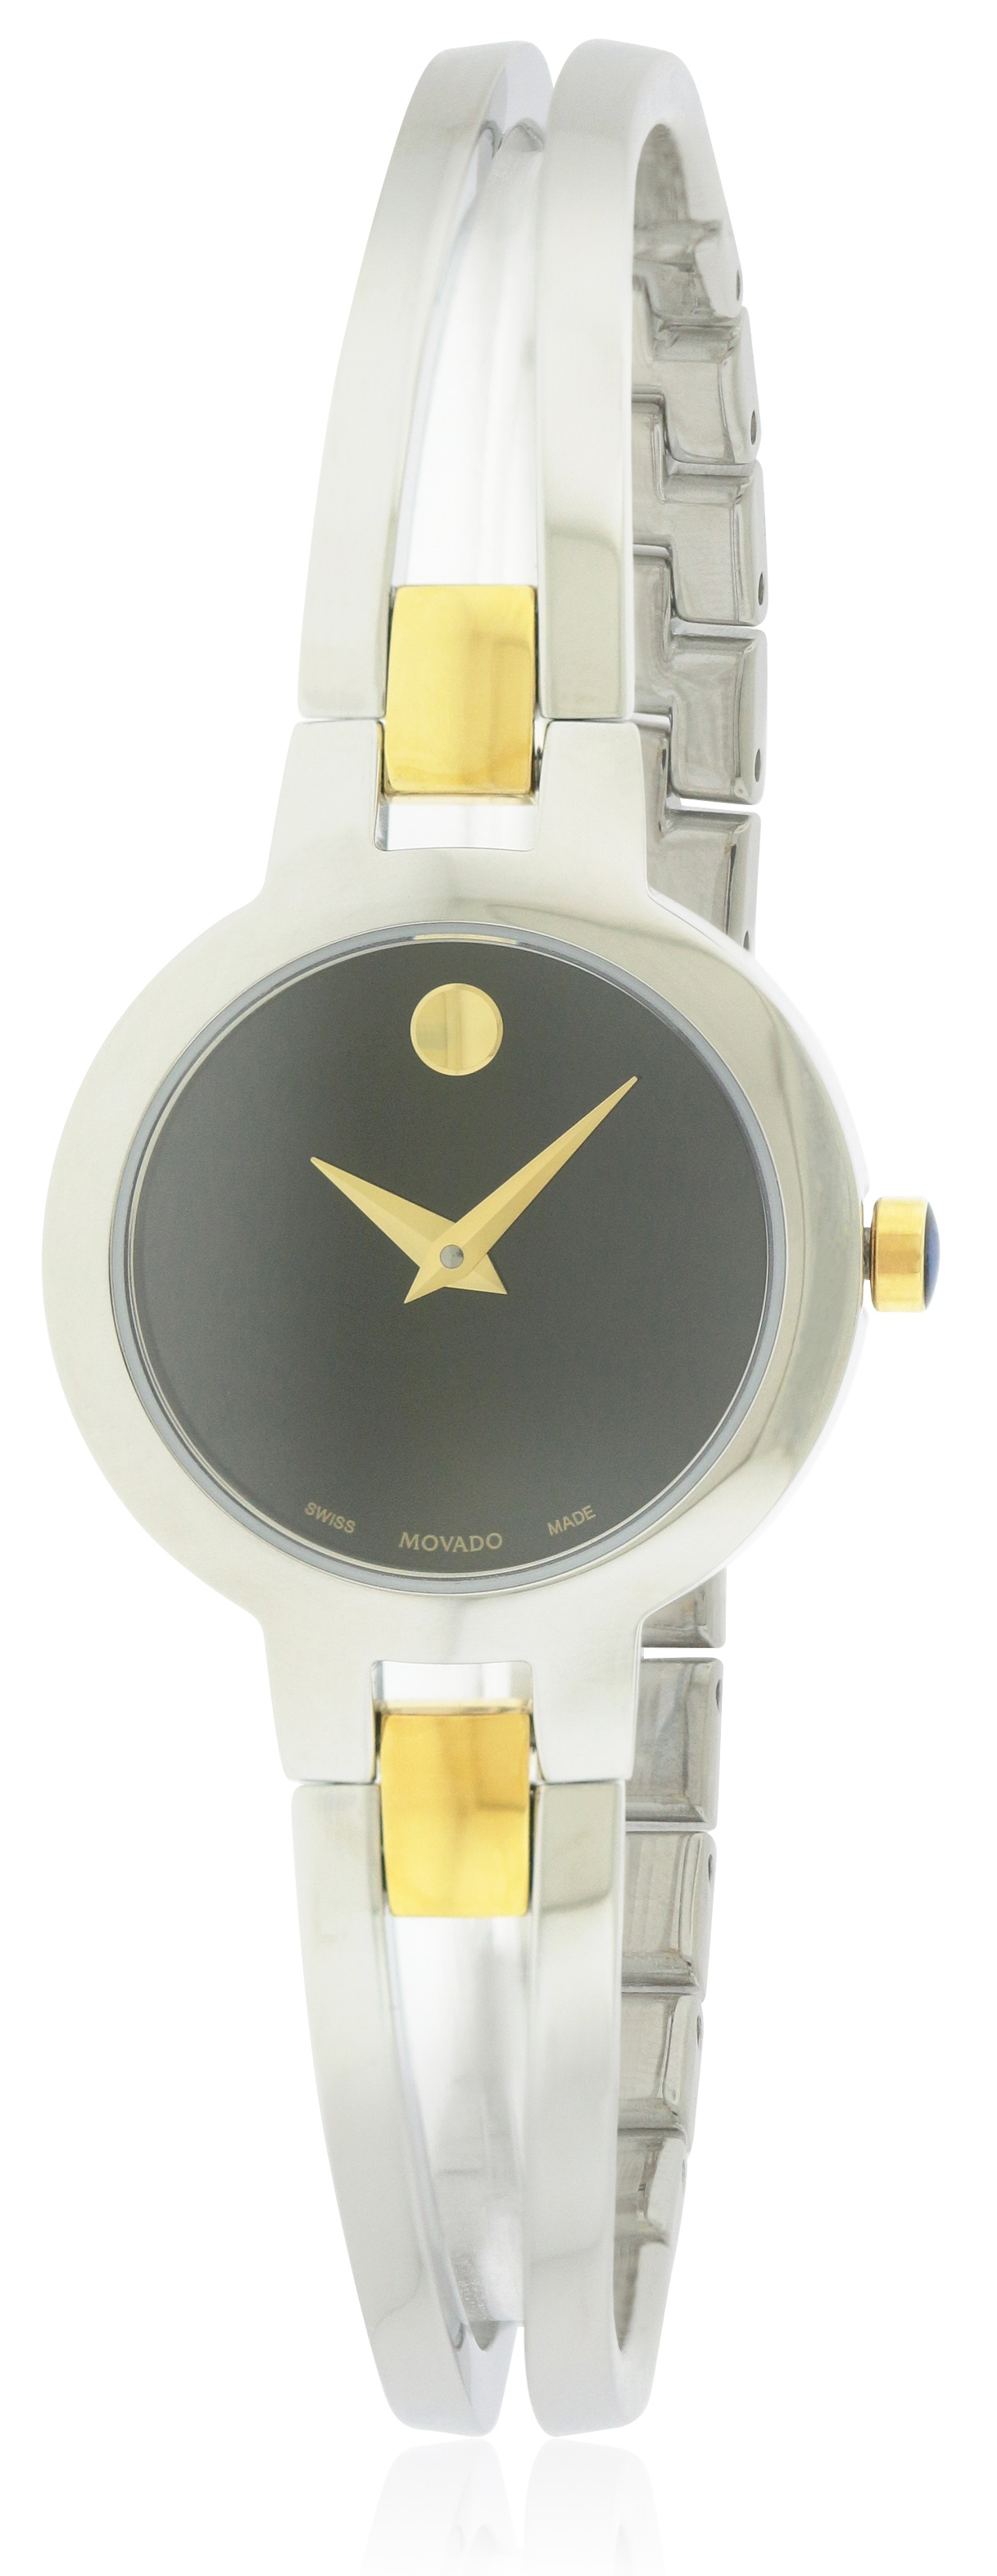 jewelry esq women movado on overstock product womens orders watches s free over by watch shipping